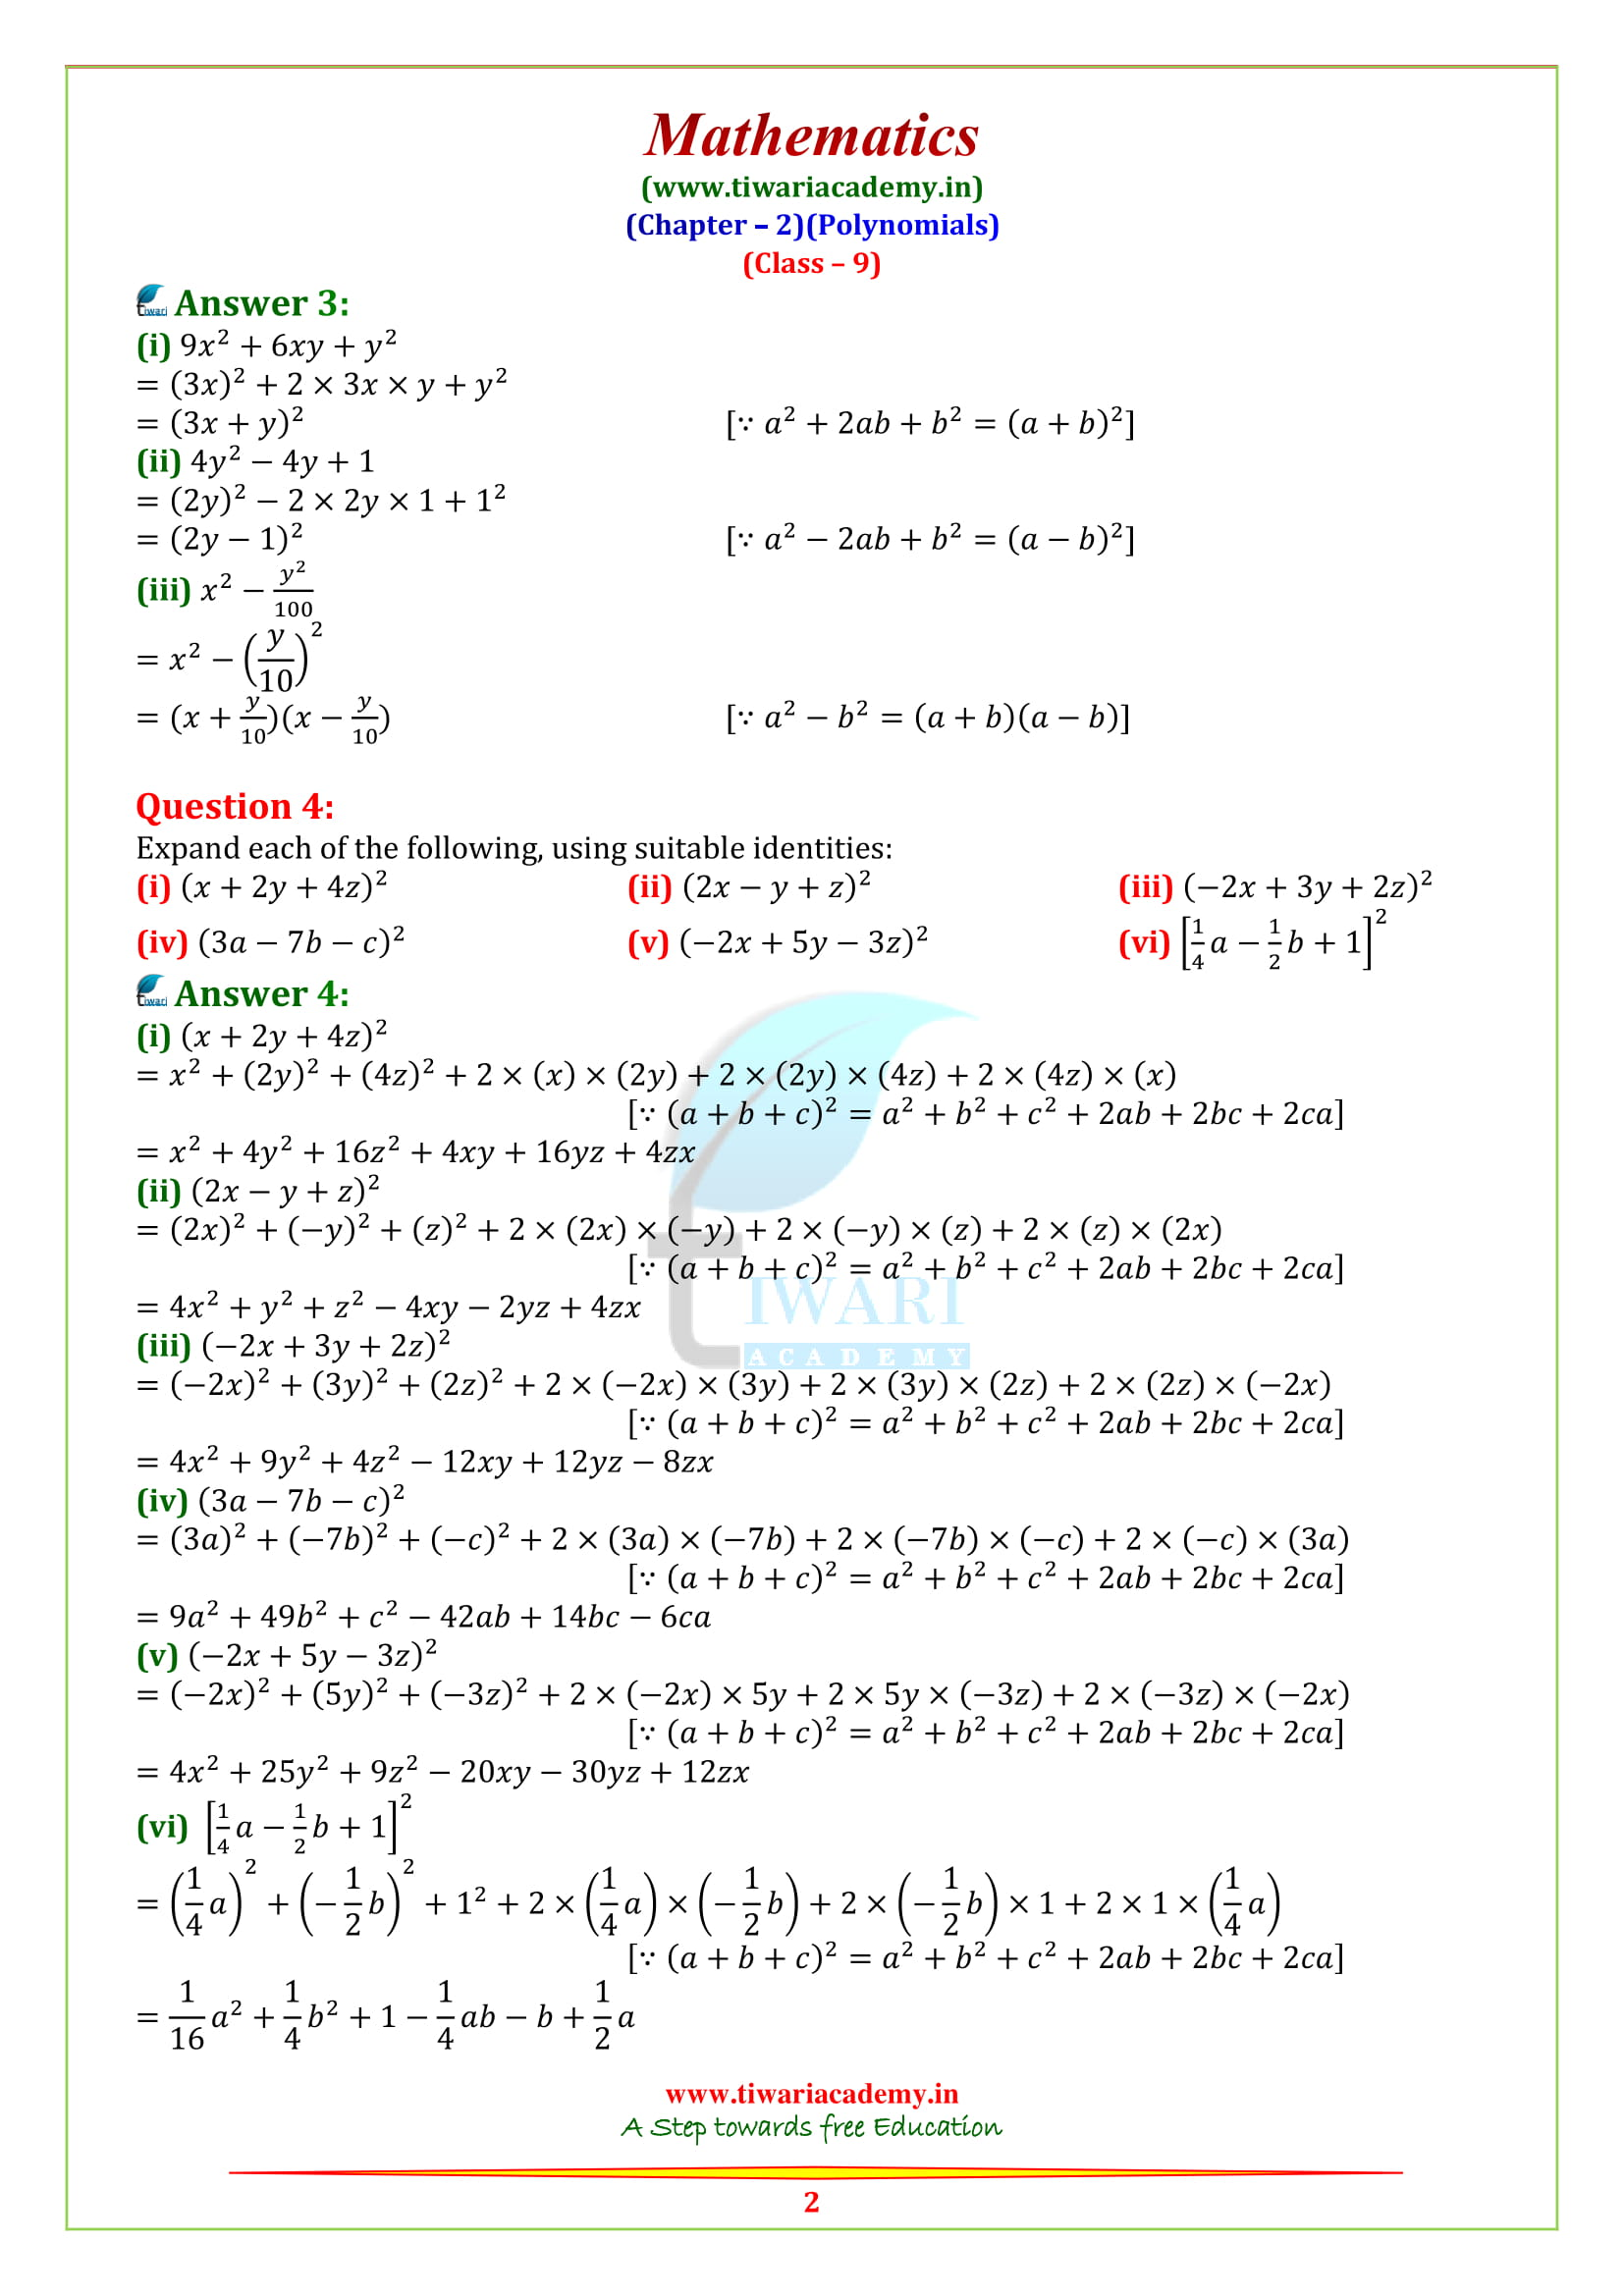 NCERT Solutions for class 9 Maths Chapter 2 Exercise 2.5 on new syllabus 2019